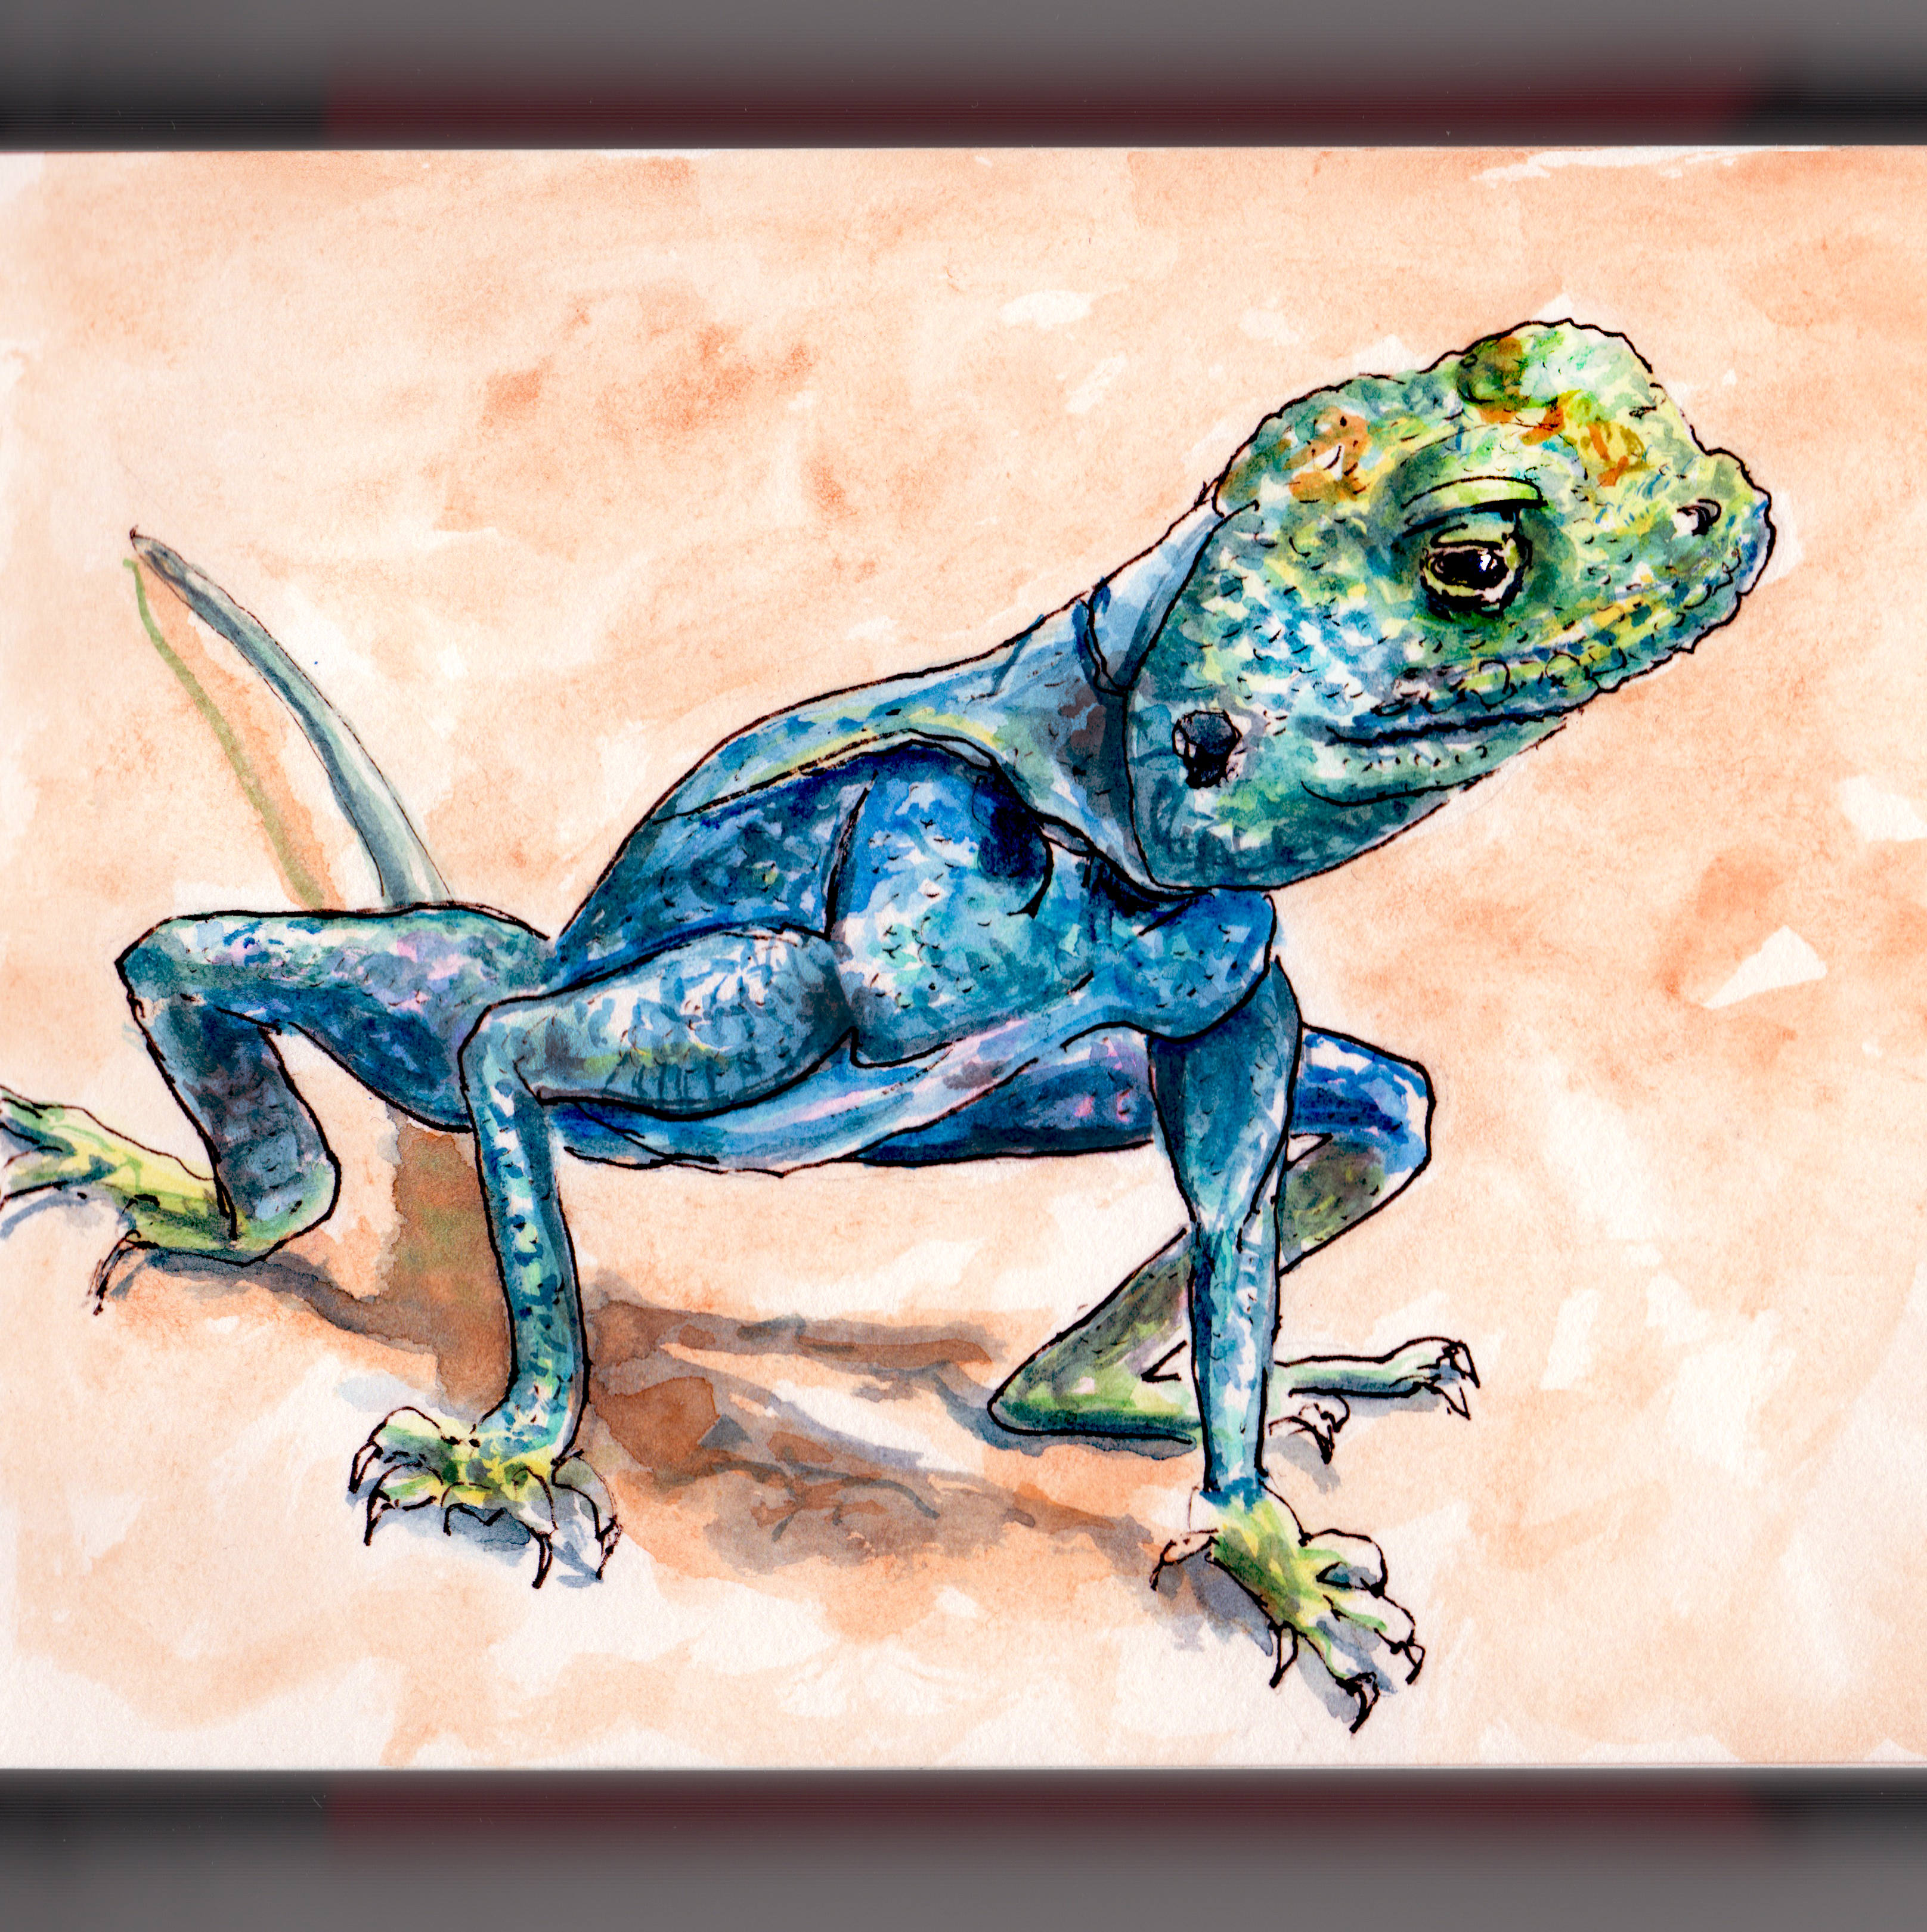 Day 24 - Leaping Lizards Watercolor of blue lizard - #doodlewash